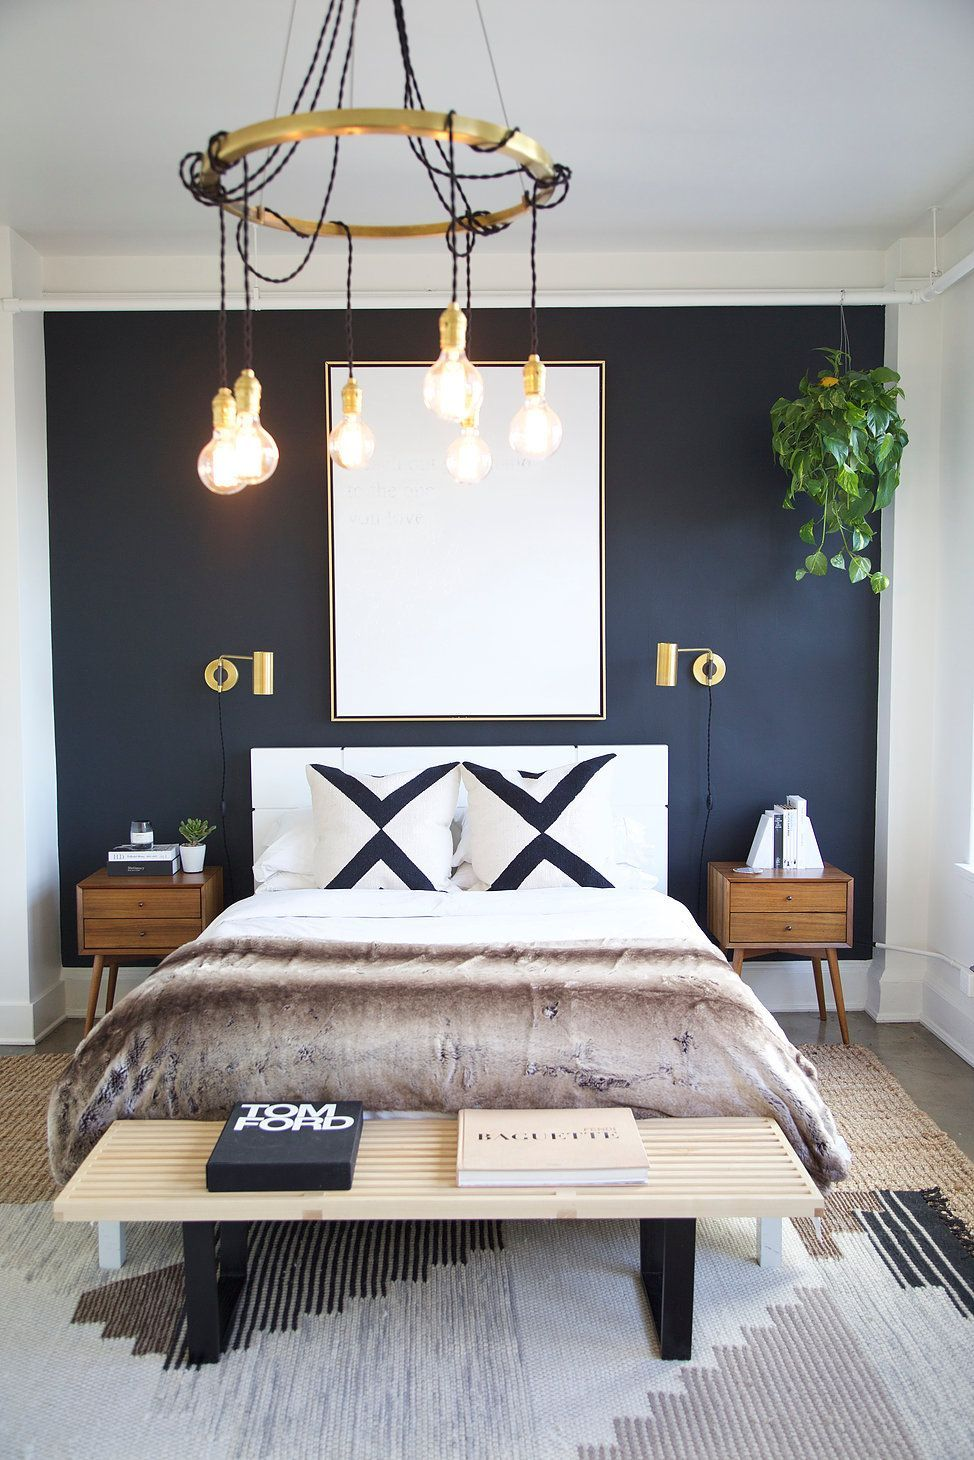 Guest Room Black Accent Wall Splashes Of Gold Taupes Neutrals In The Rug Linens His Hers Sconces Be Bedroom Interior Home Decor Bedroom Blue Accent Walls